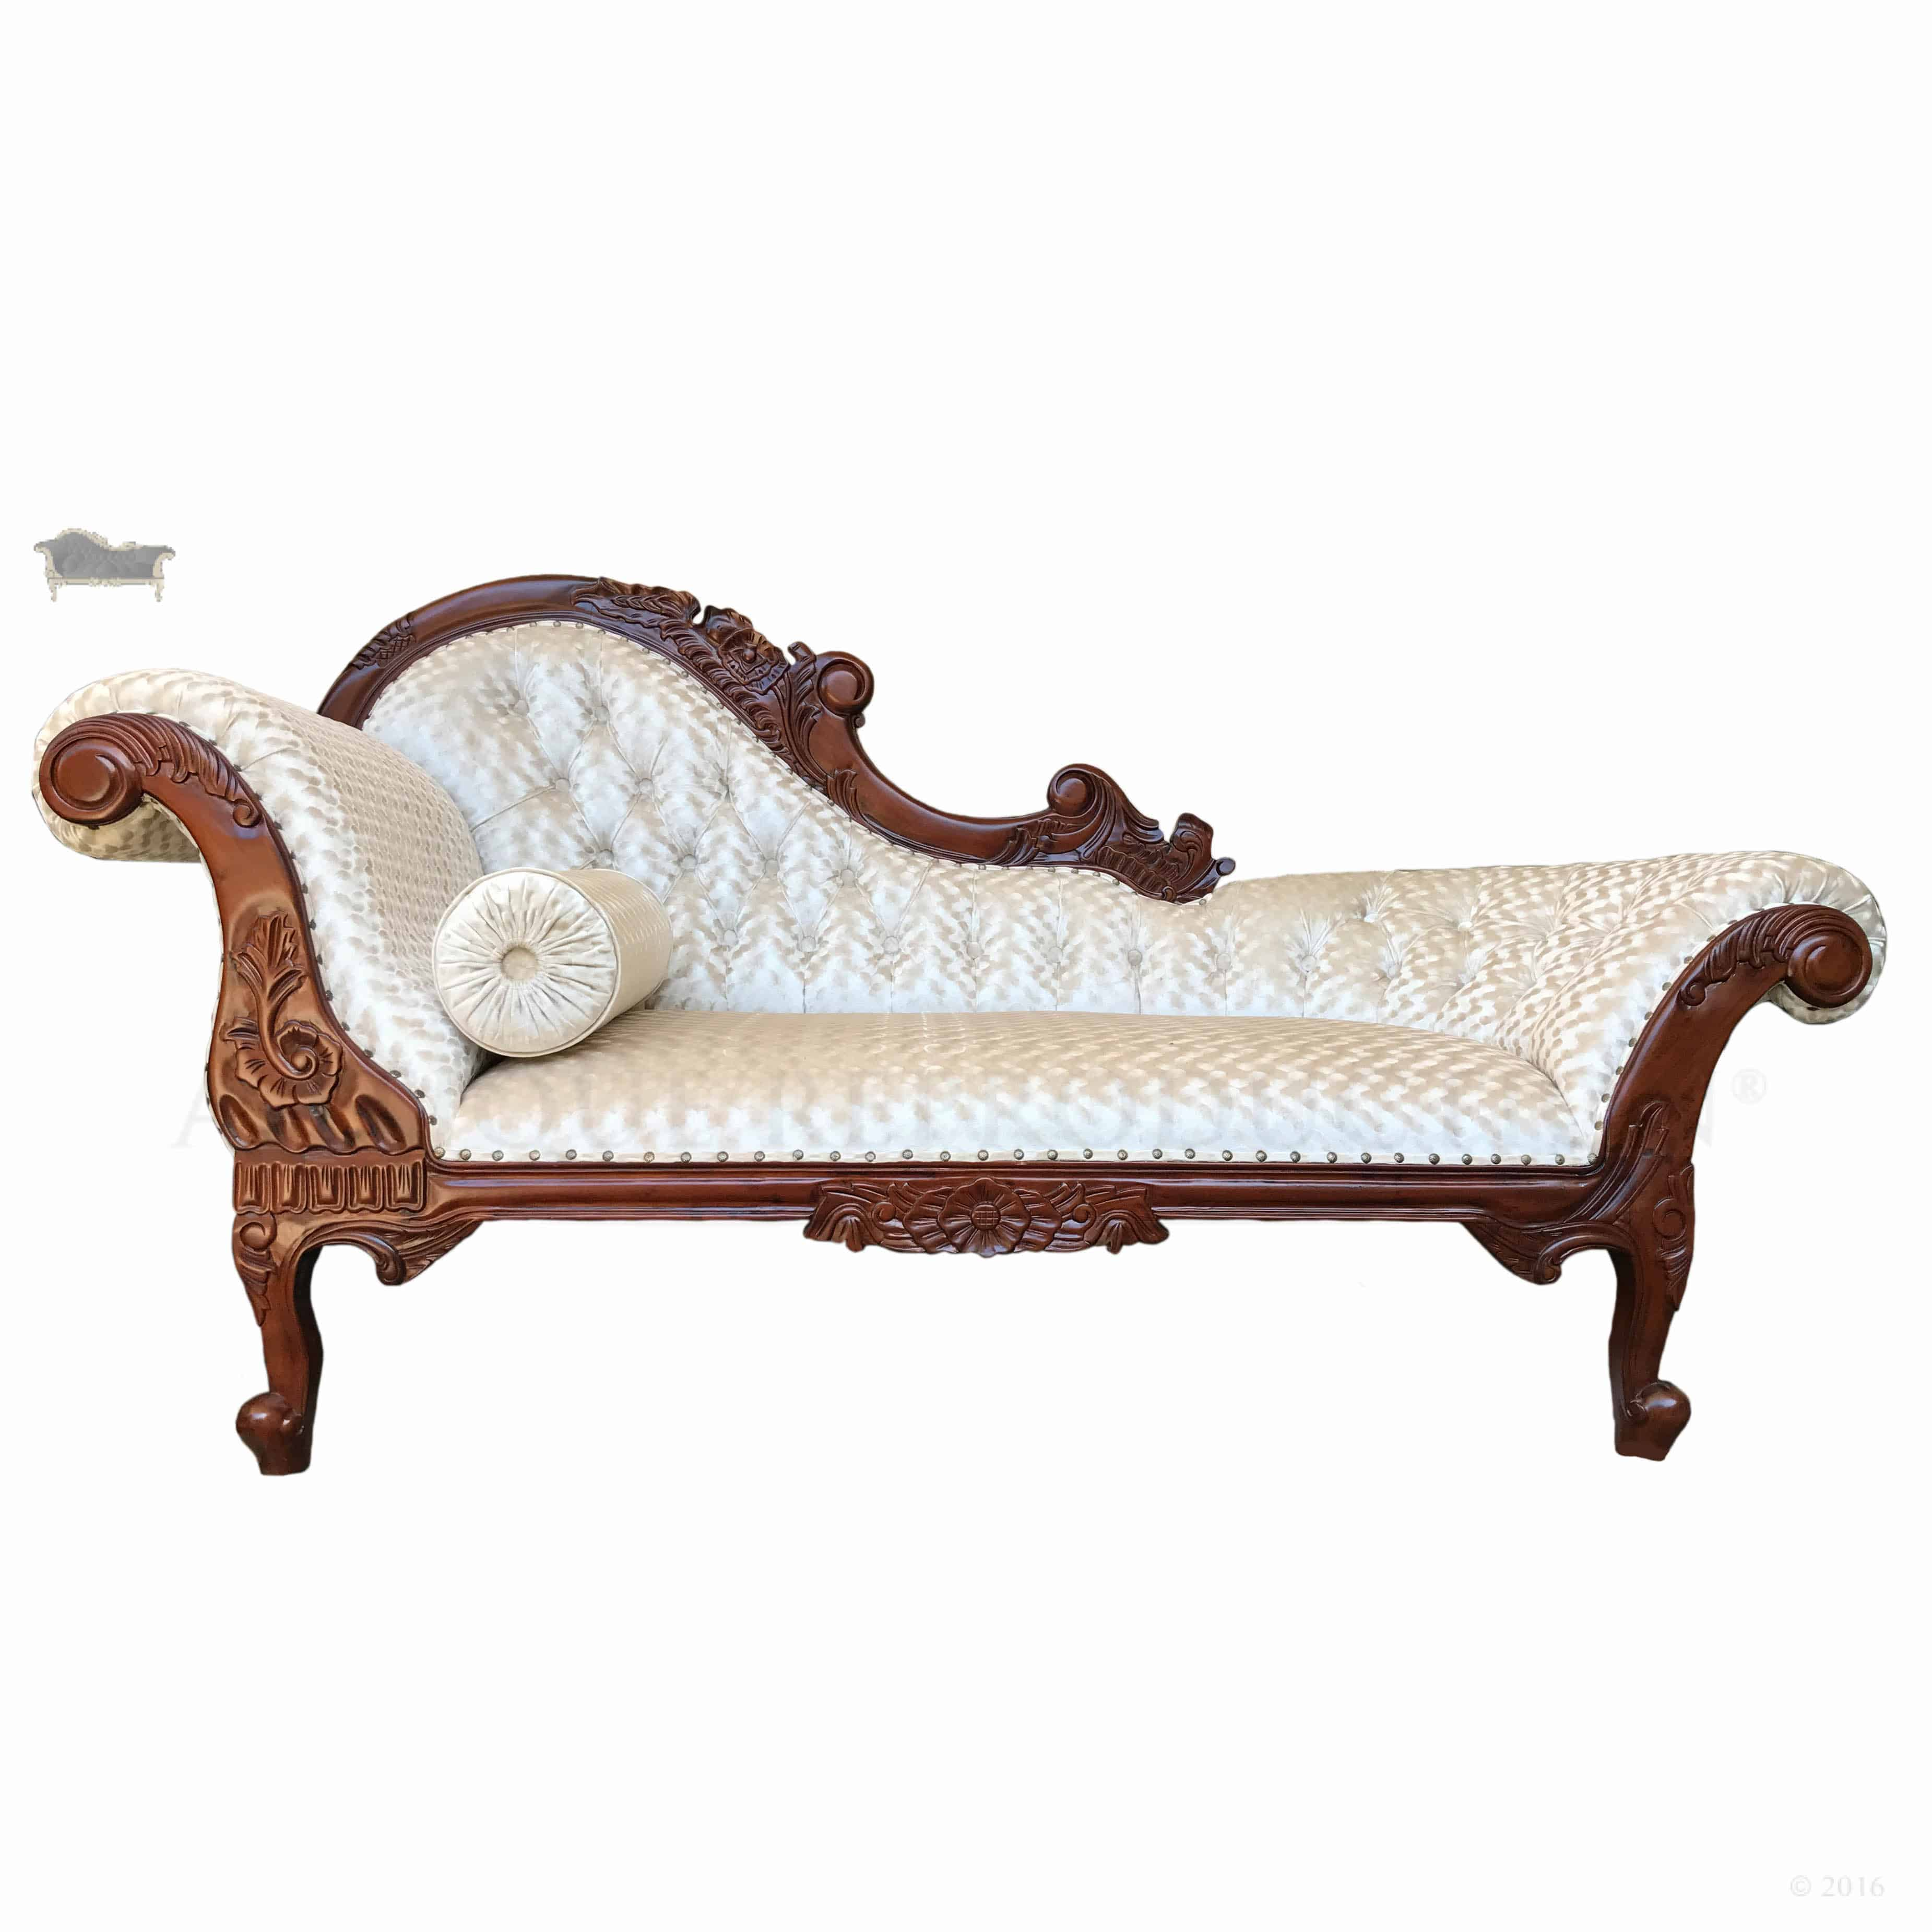 French Chaise Chaise Lounge French Provincial Antique Reproduction Shop